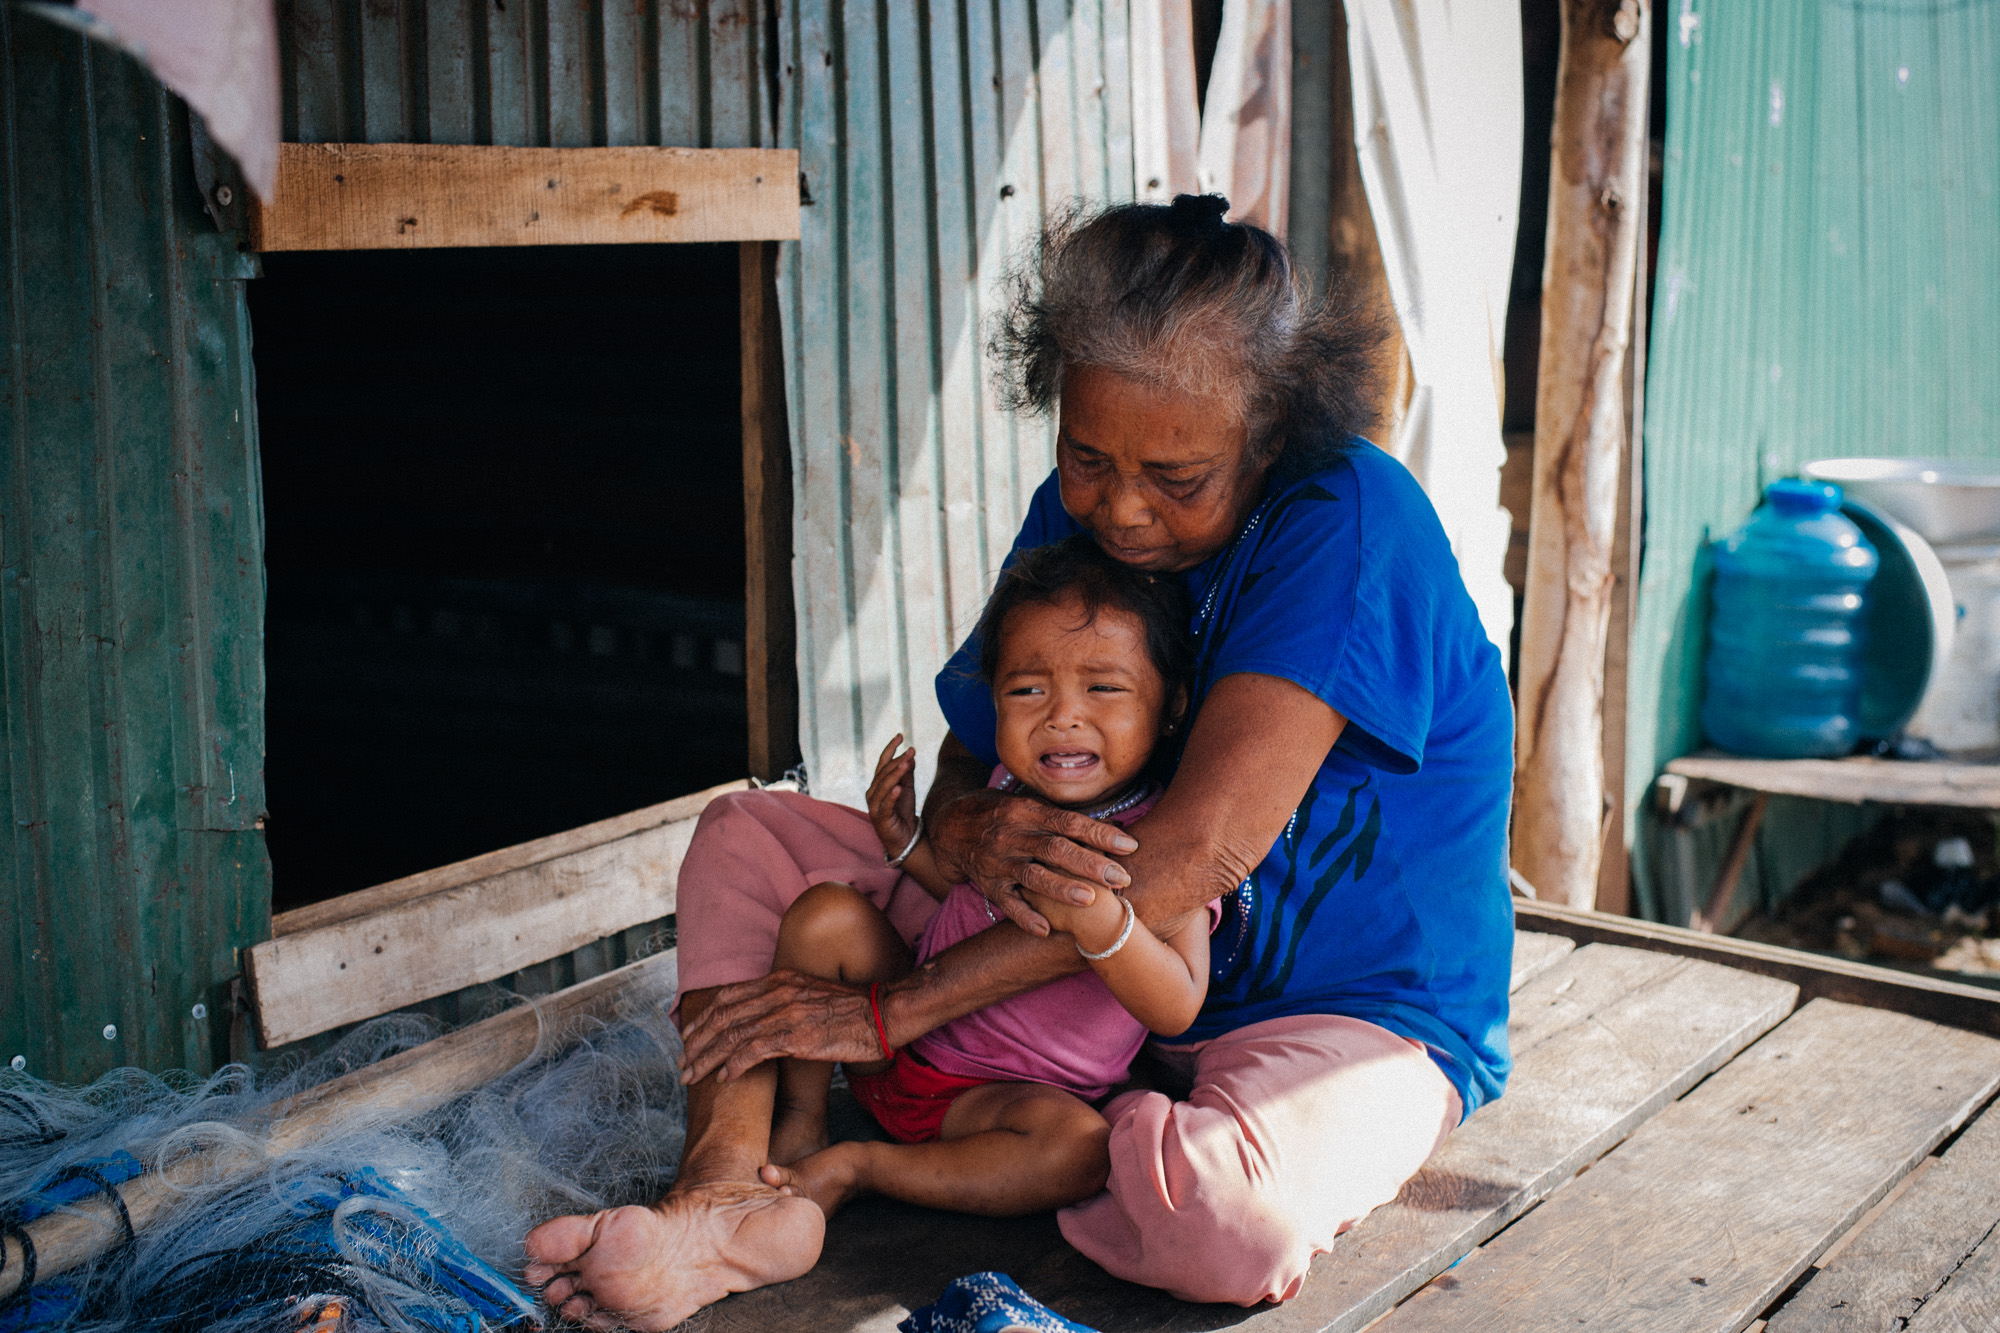 This little girl saw me and was scared. My non-asian face was so unusual to her that she just grabbed her (I think) grandma.